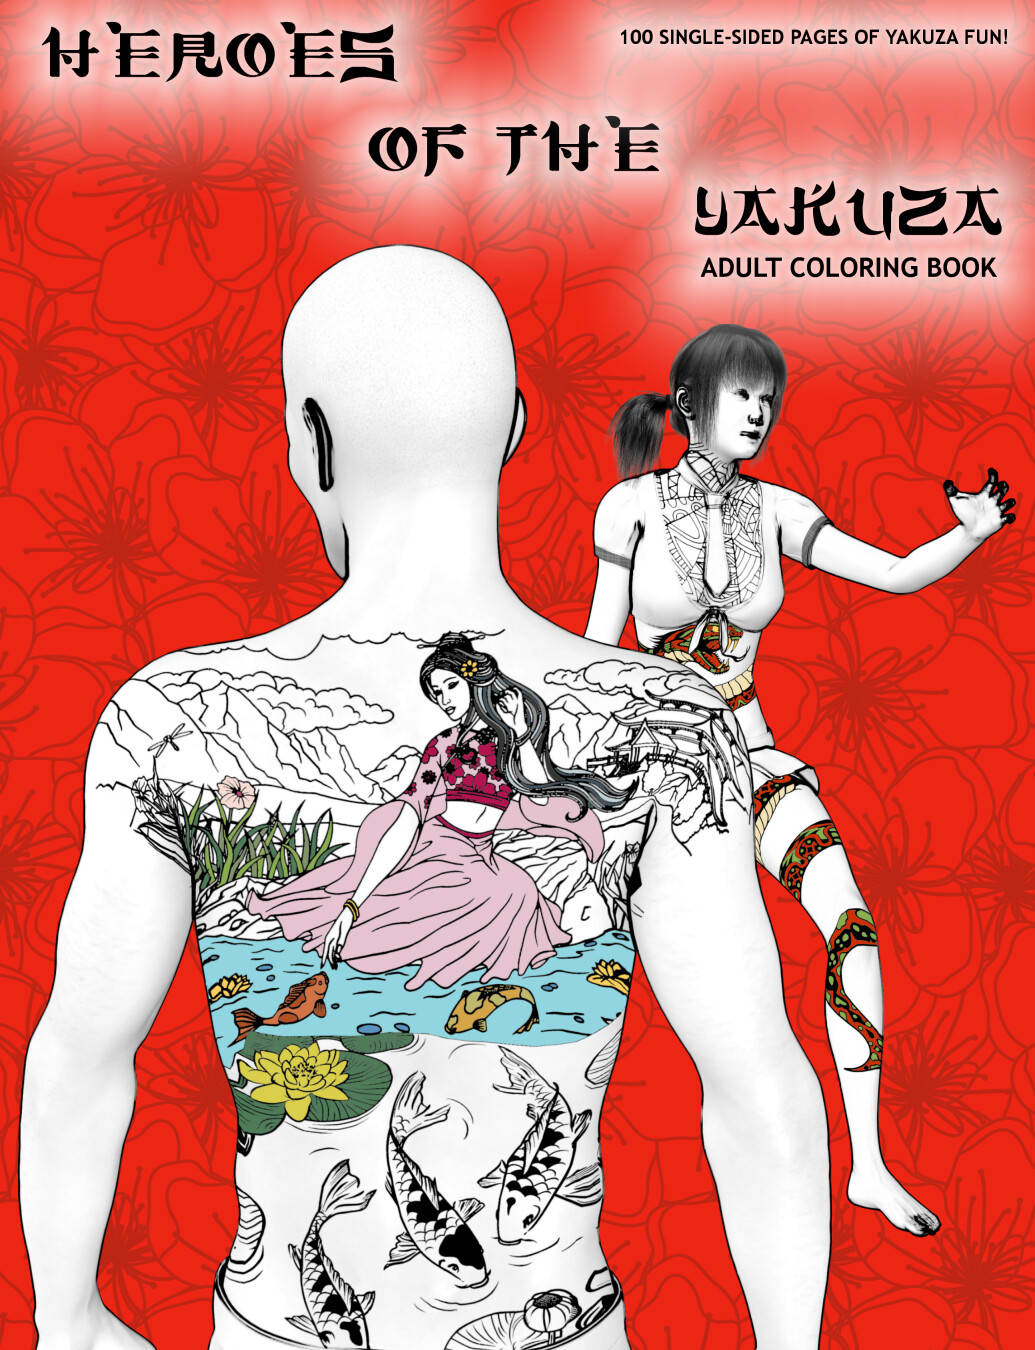 Heroes of the Yakuza Adult Coloring Book